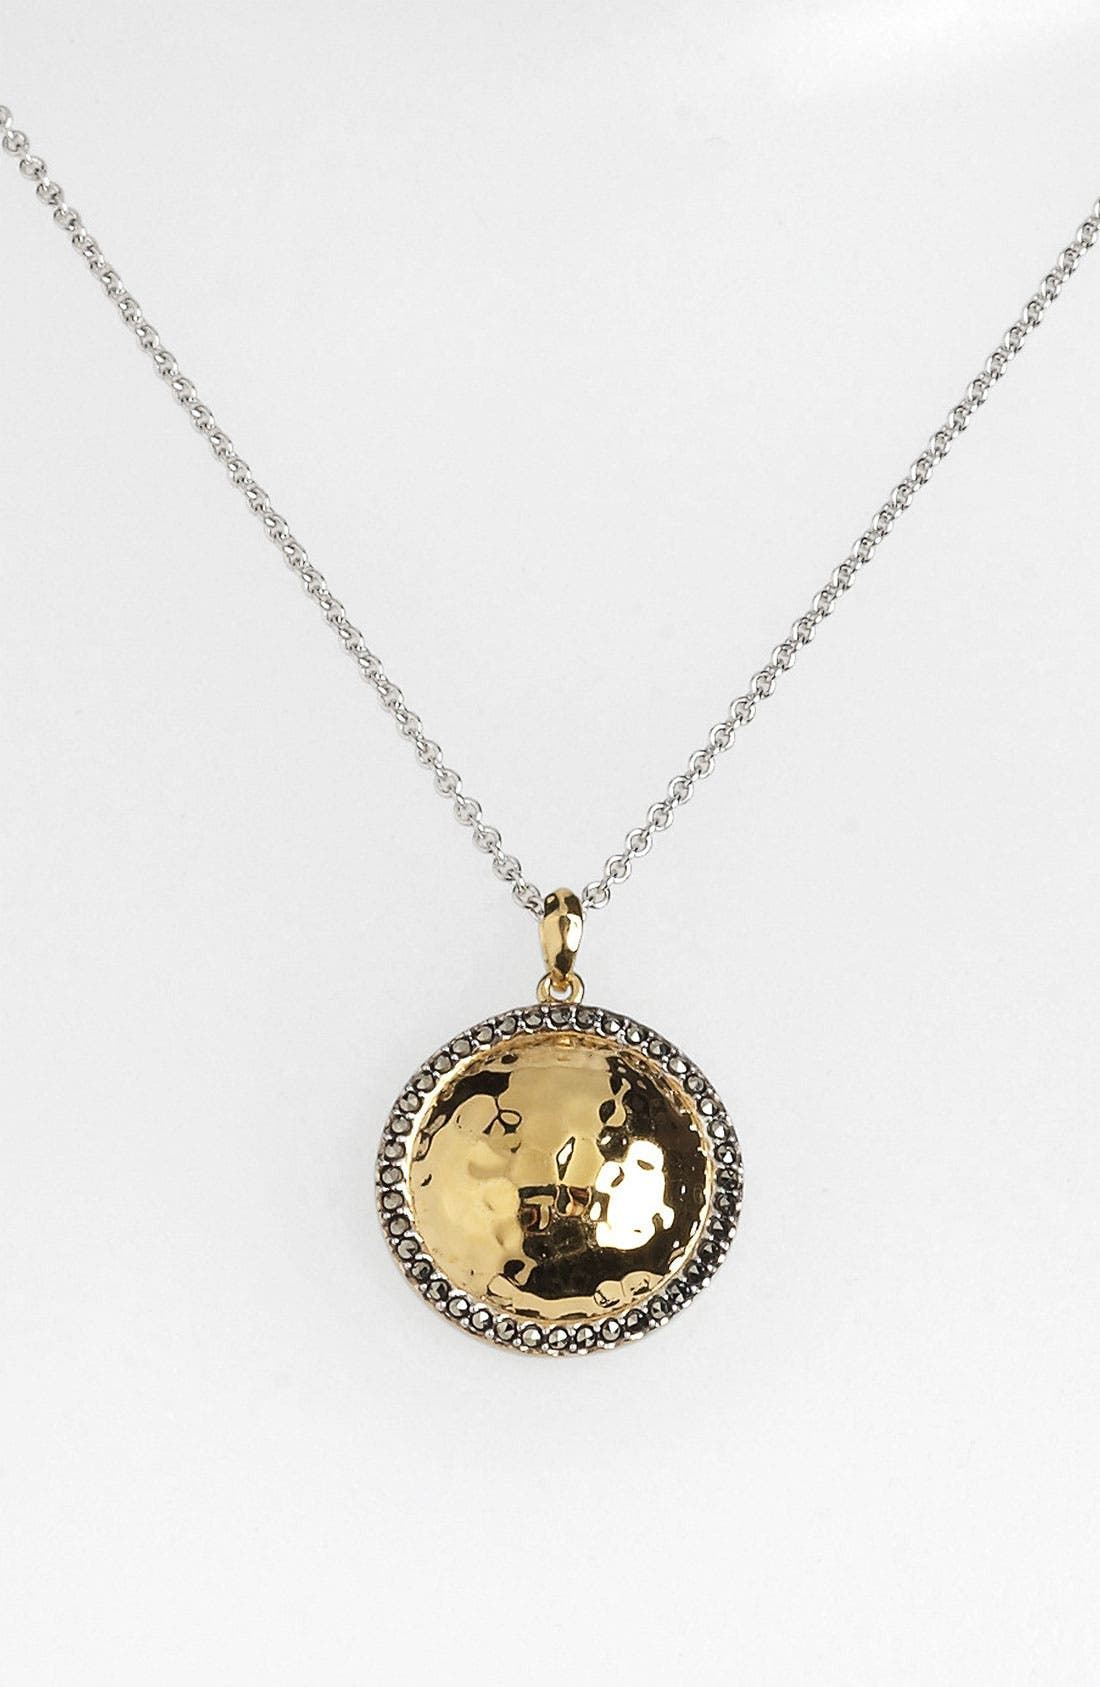 Alternate Image 1 Selected - Judith Jack 'Gold Sea' Puffy Dome Pendant Necklace